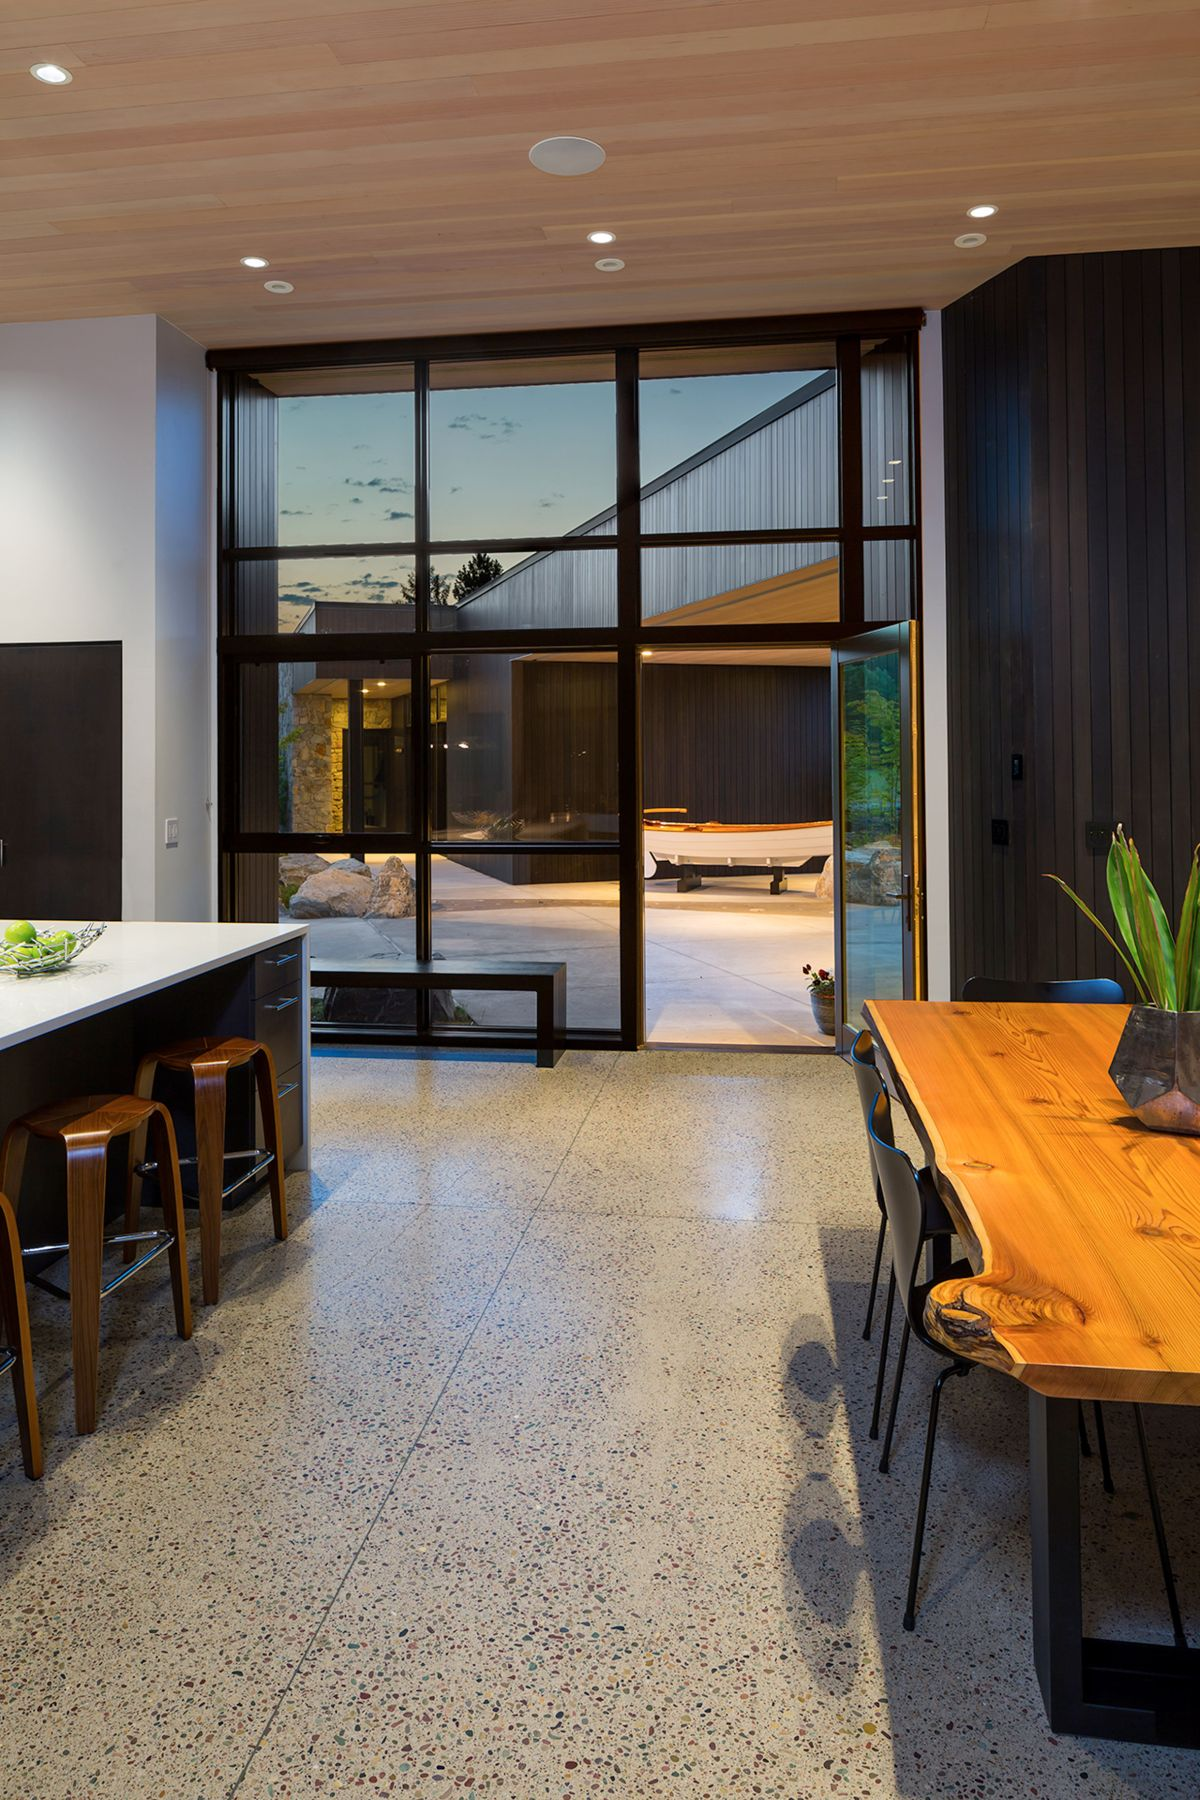 The central courtyard acts as an extension of the living areas outdoors